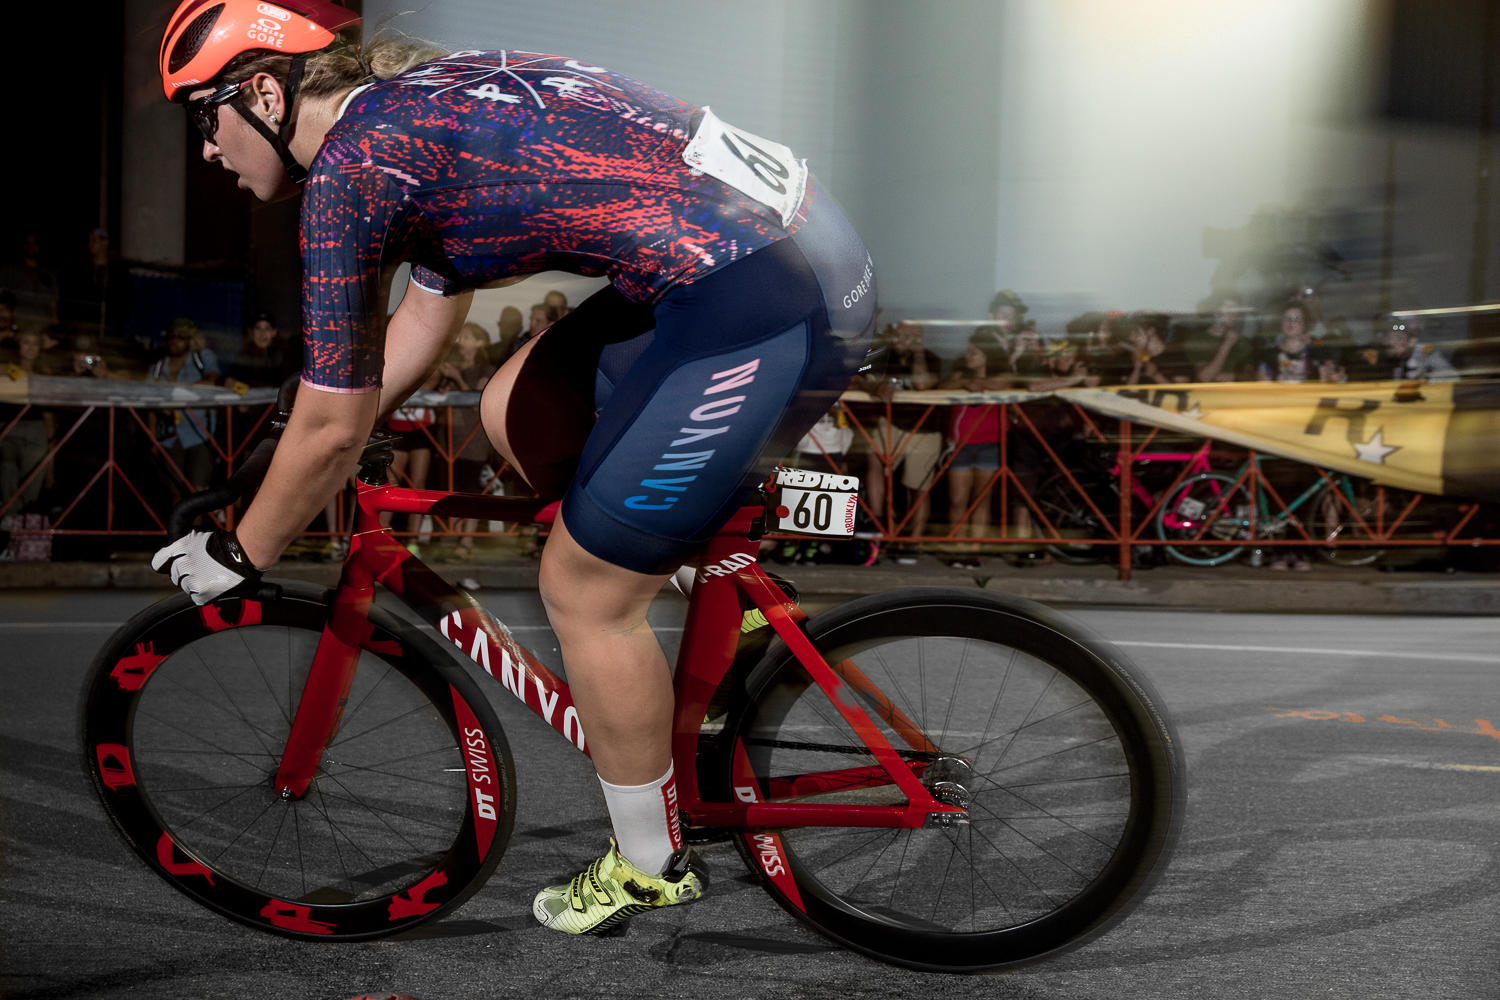 Tamika Hingst RAD PACK, Red Hook Crit